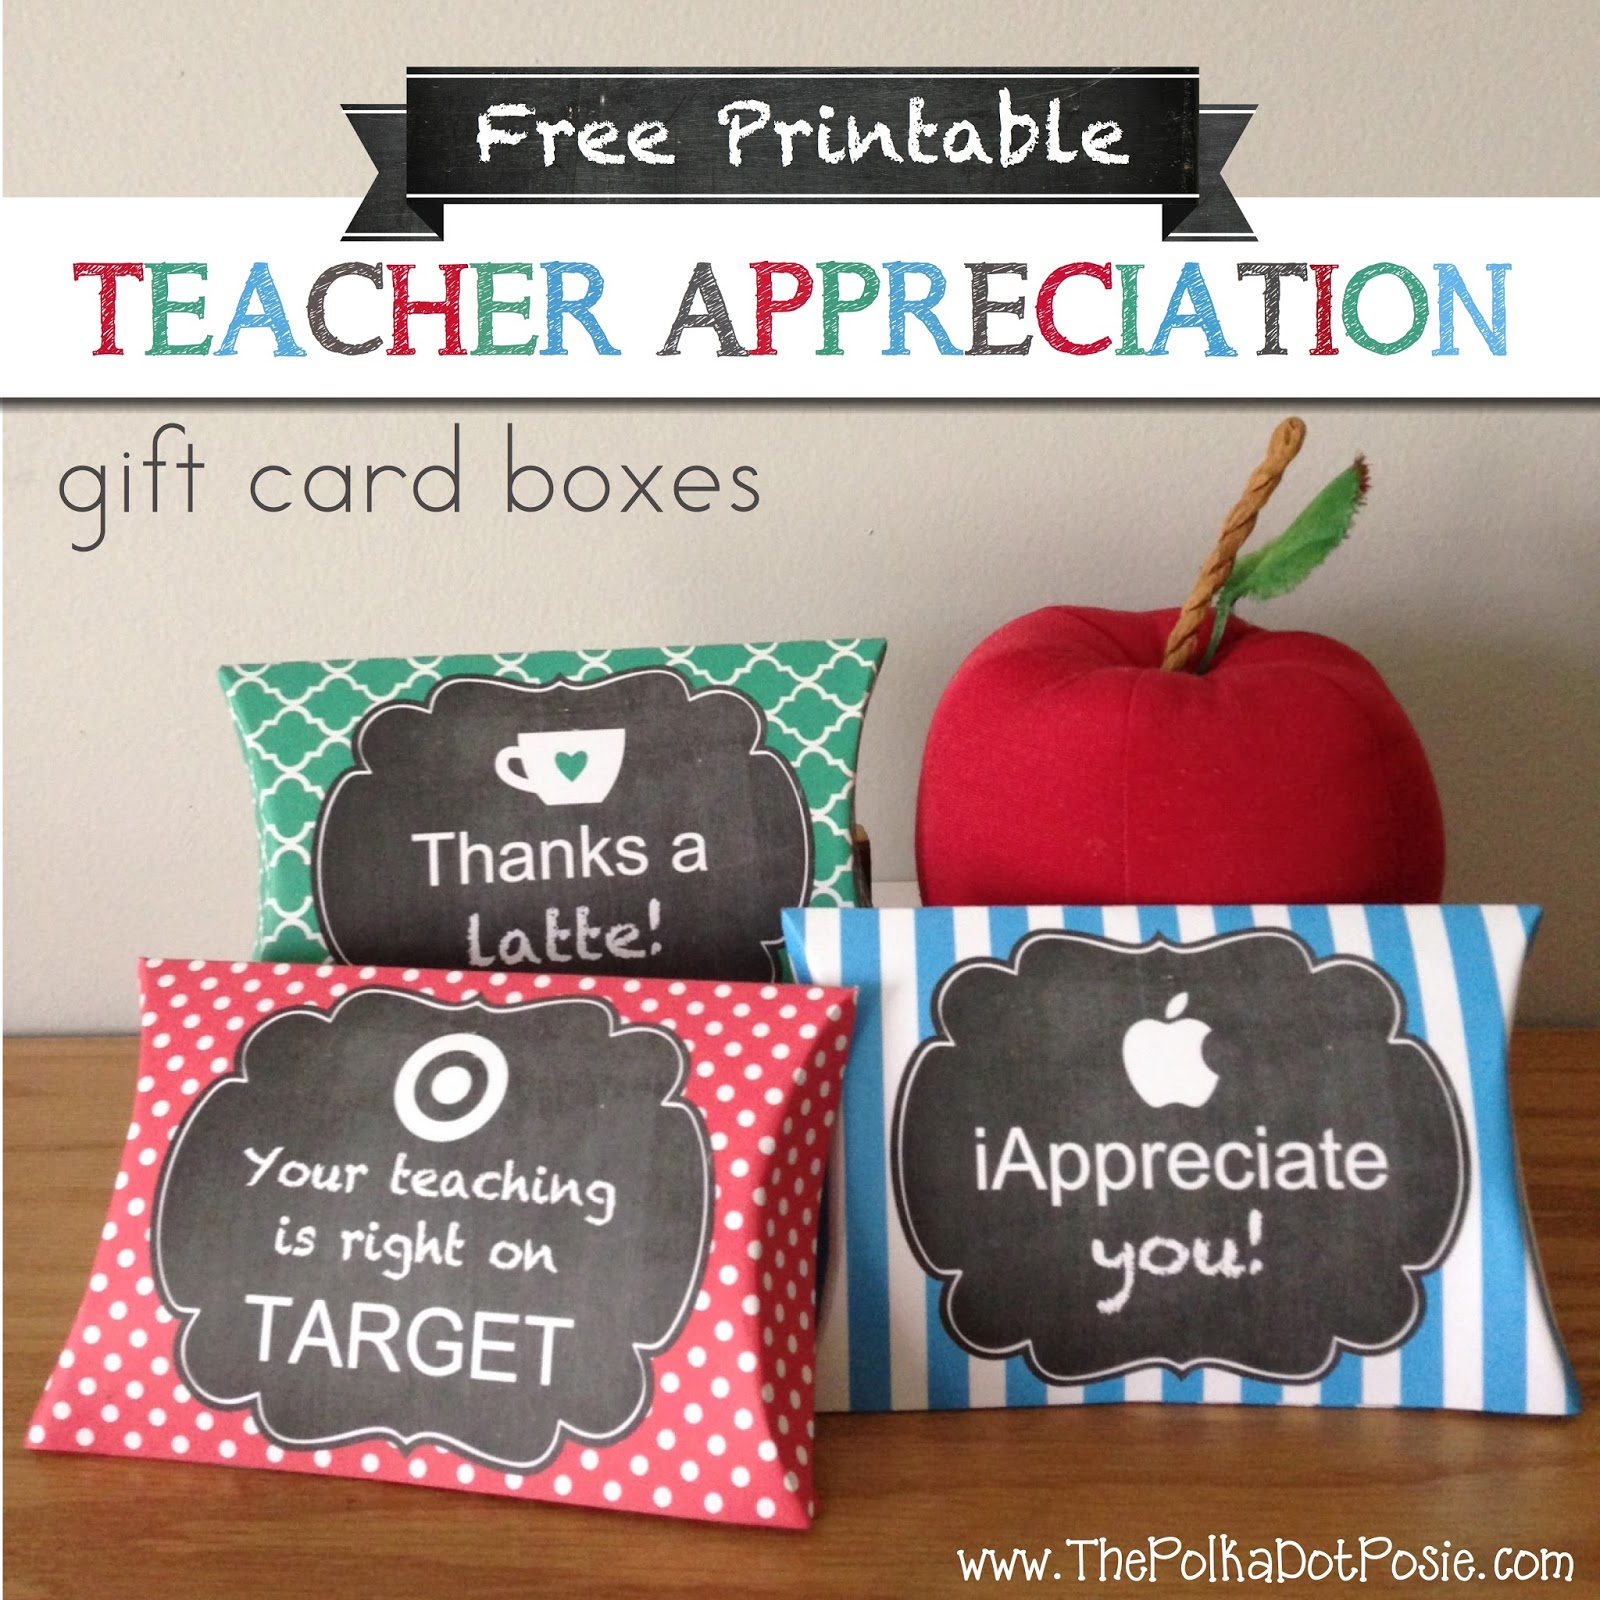 image regarding Printable Target Gift Card identify The Polka Dot Posie: Totally free Printable Trainer Appreciation